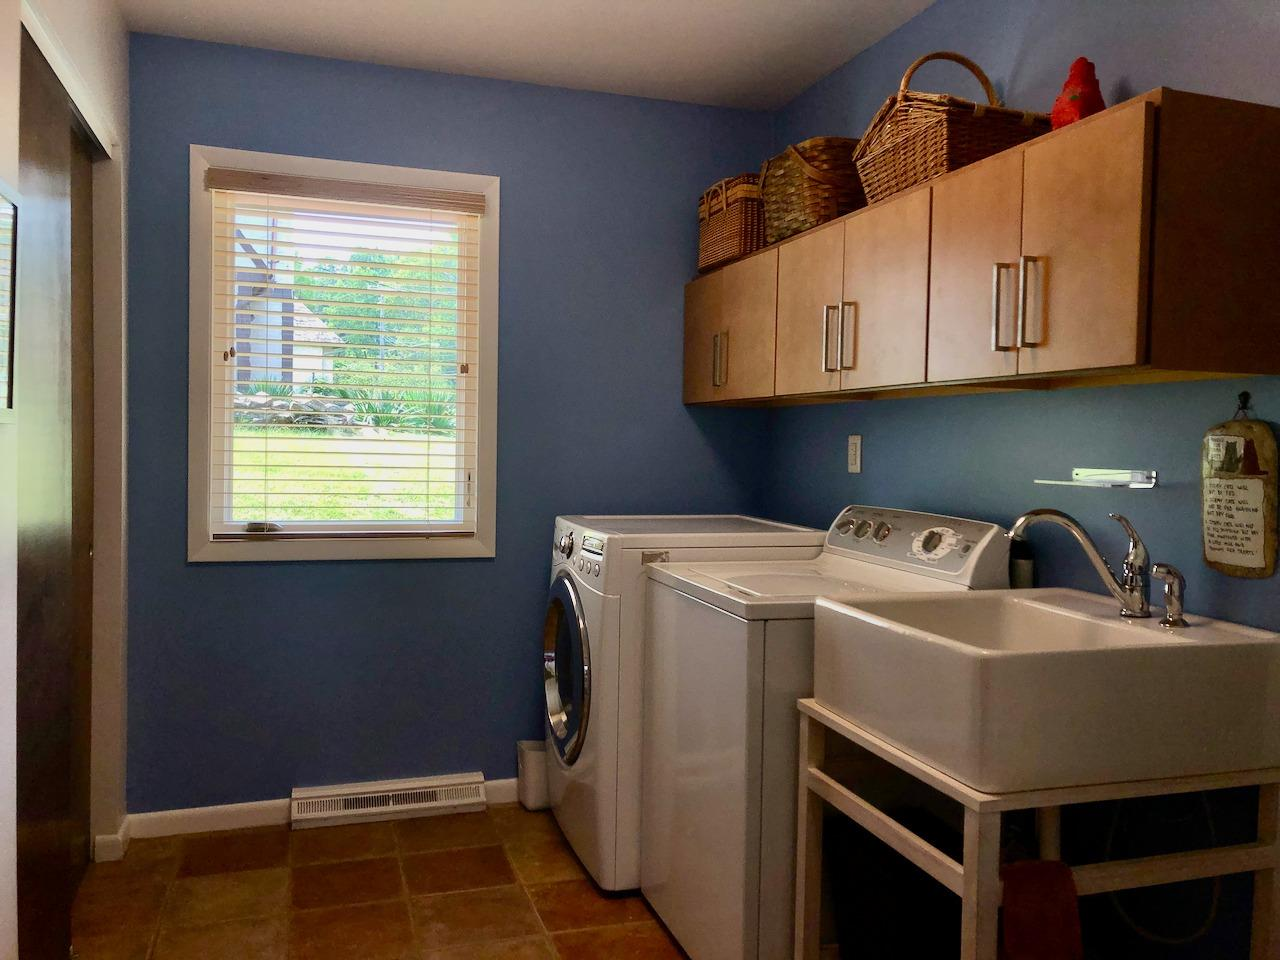 The laundry/mudroom is the perfect transition from the garage to the kitchen.  Such a handy space with 2 large closets, cabinets, washer & dryer (included in sale) and a laundry tub! And not just any laundry tub - it's a Villeroy & Boch contemporary farmhouse sink!  Door to the garage is just to the right of the sink.